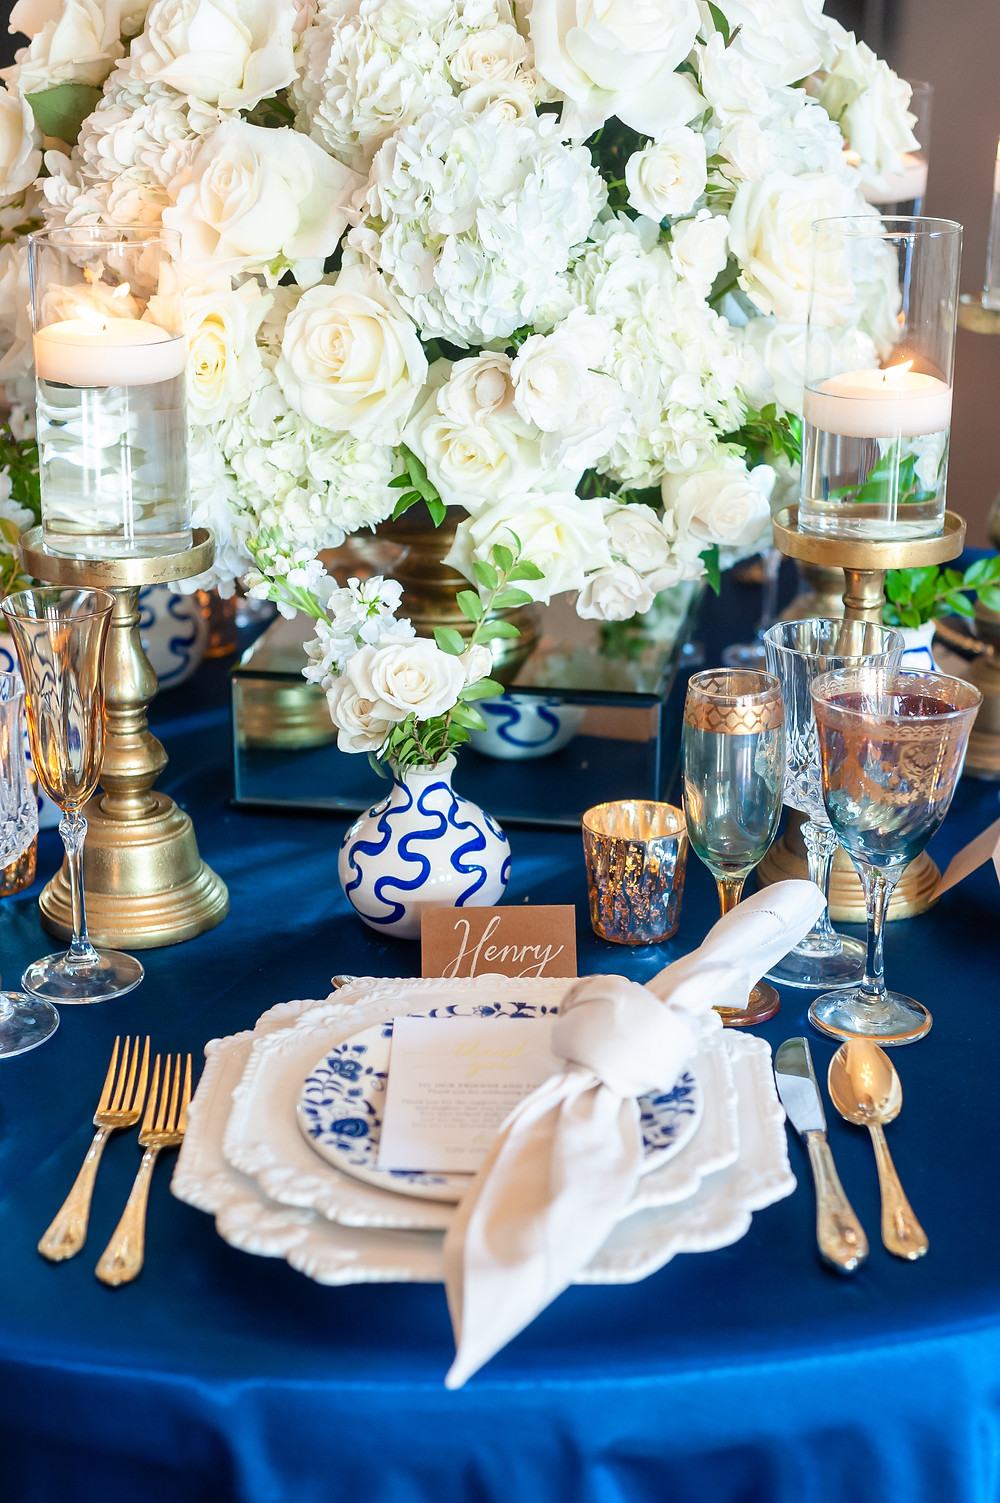 Wedding Venue Checklist for Couples: Questions to Ask Chicago Venue